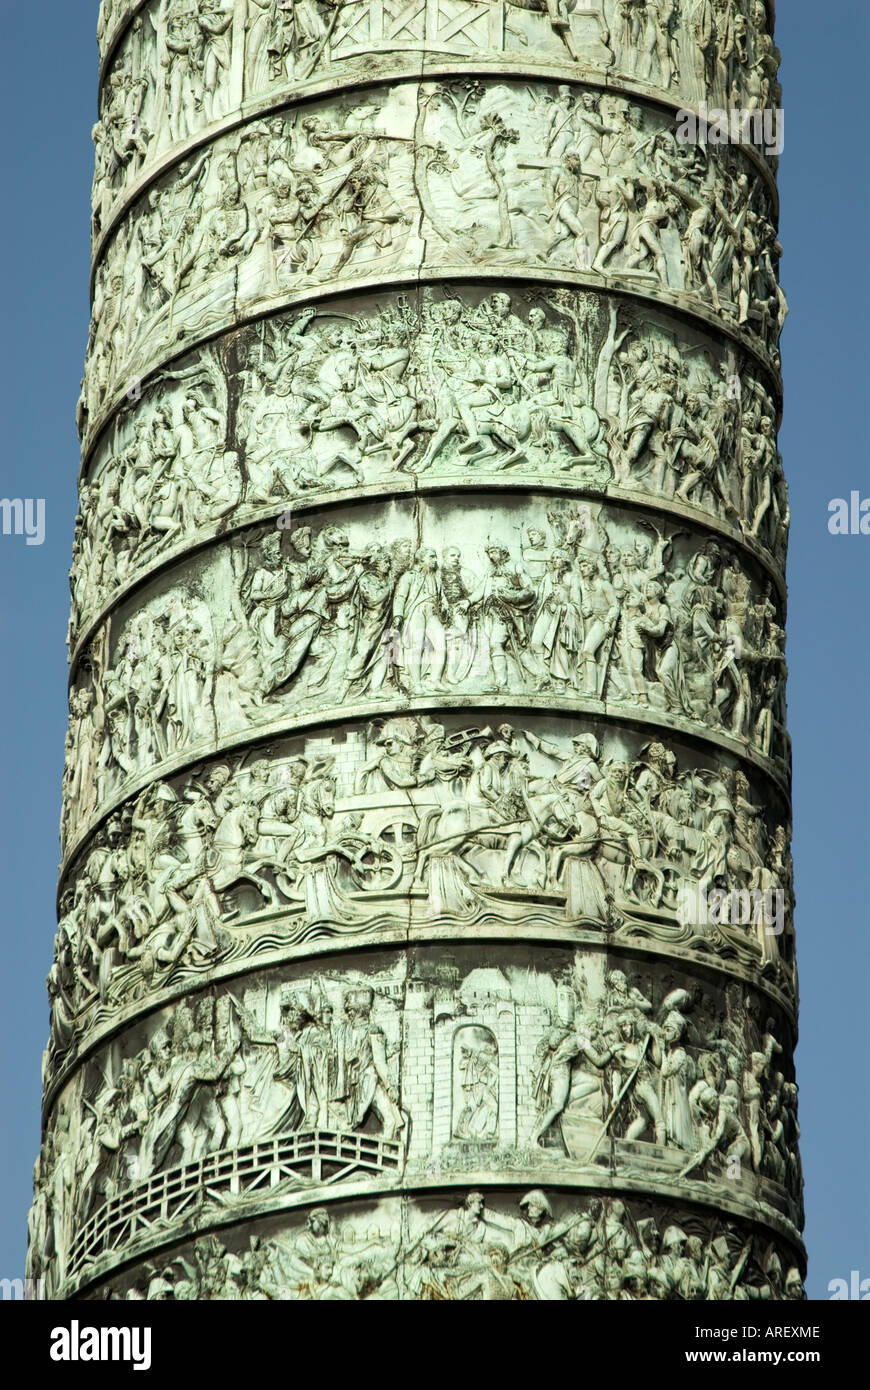 The Austerlitz Column in Place Vendome featuring Napoleon's Military exploits Paris France - Stock Image